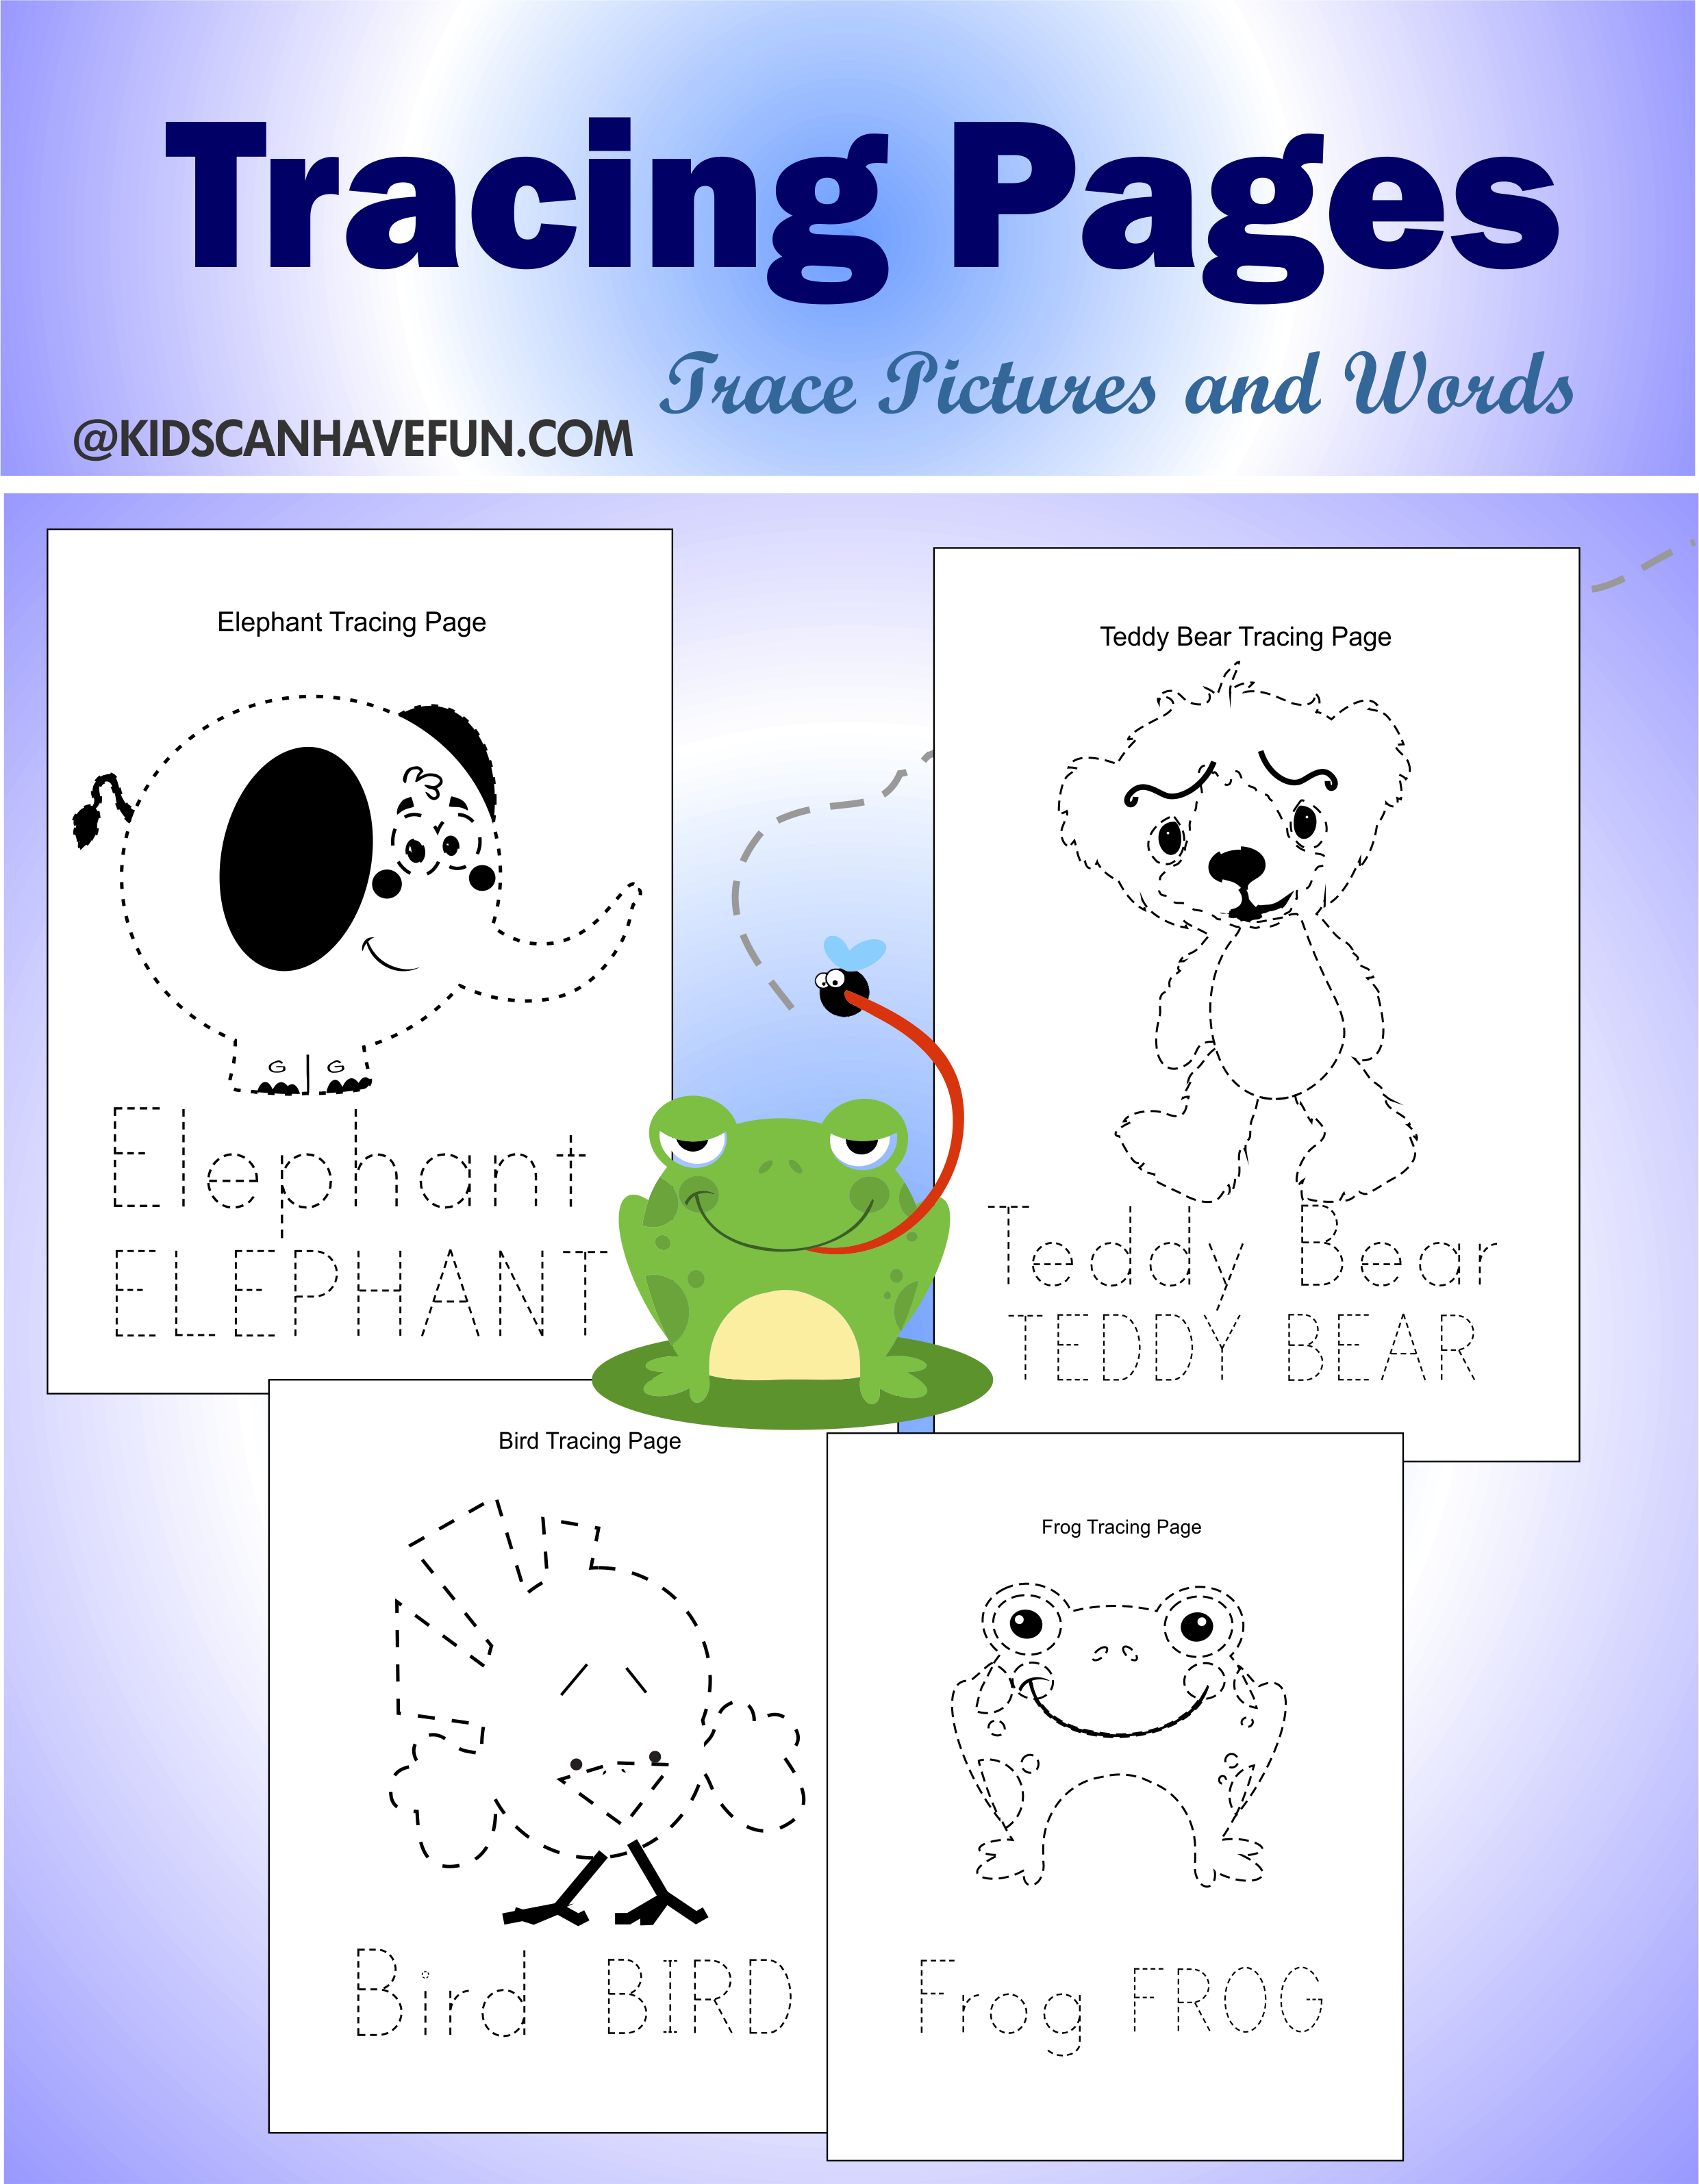 Tracing Pages For Kids Dscanhavefun